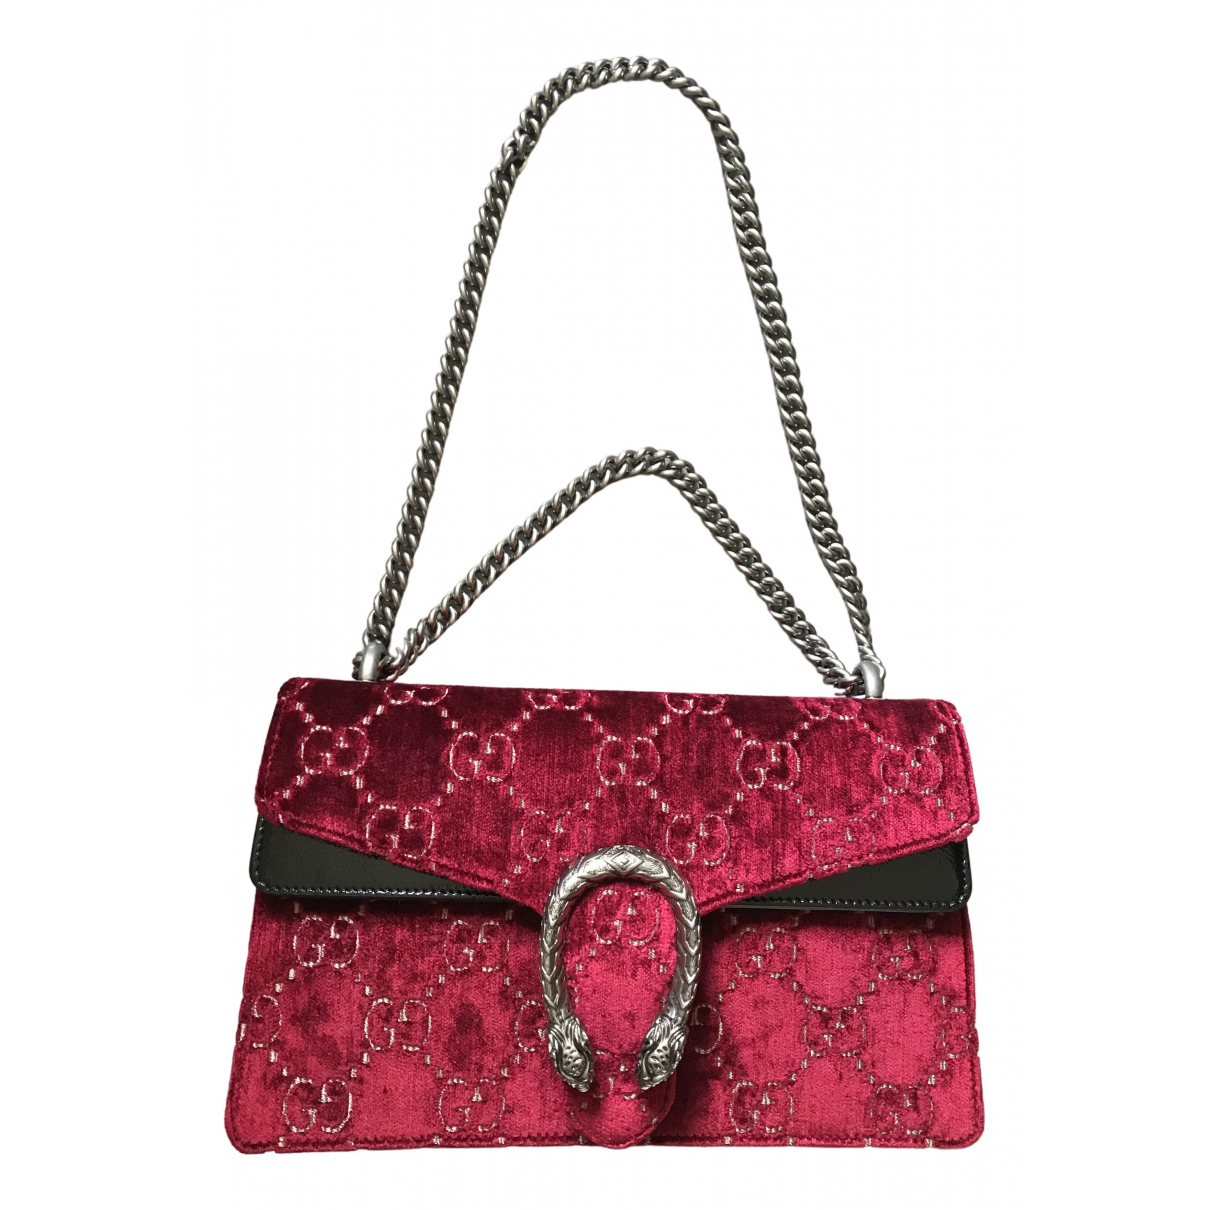 Gucci Dionysus Burgundy Velvet handbag for Women \N